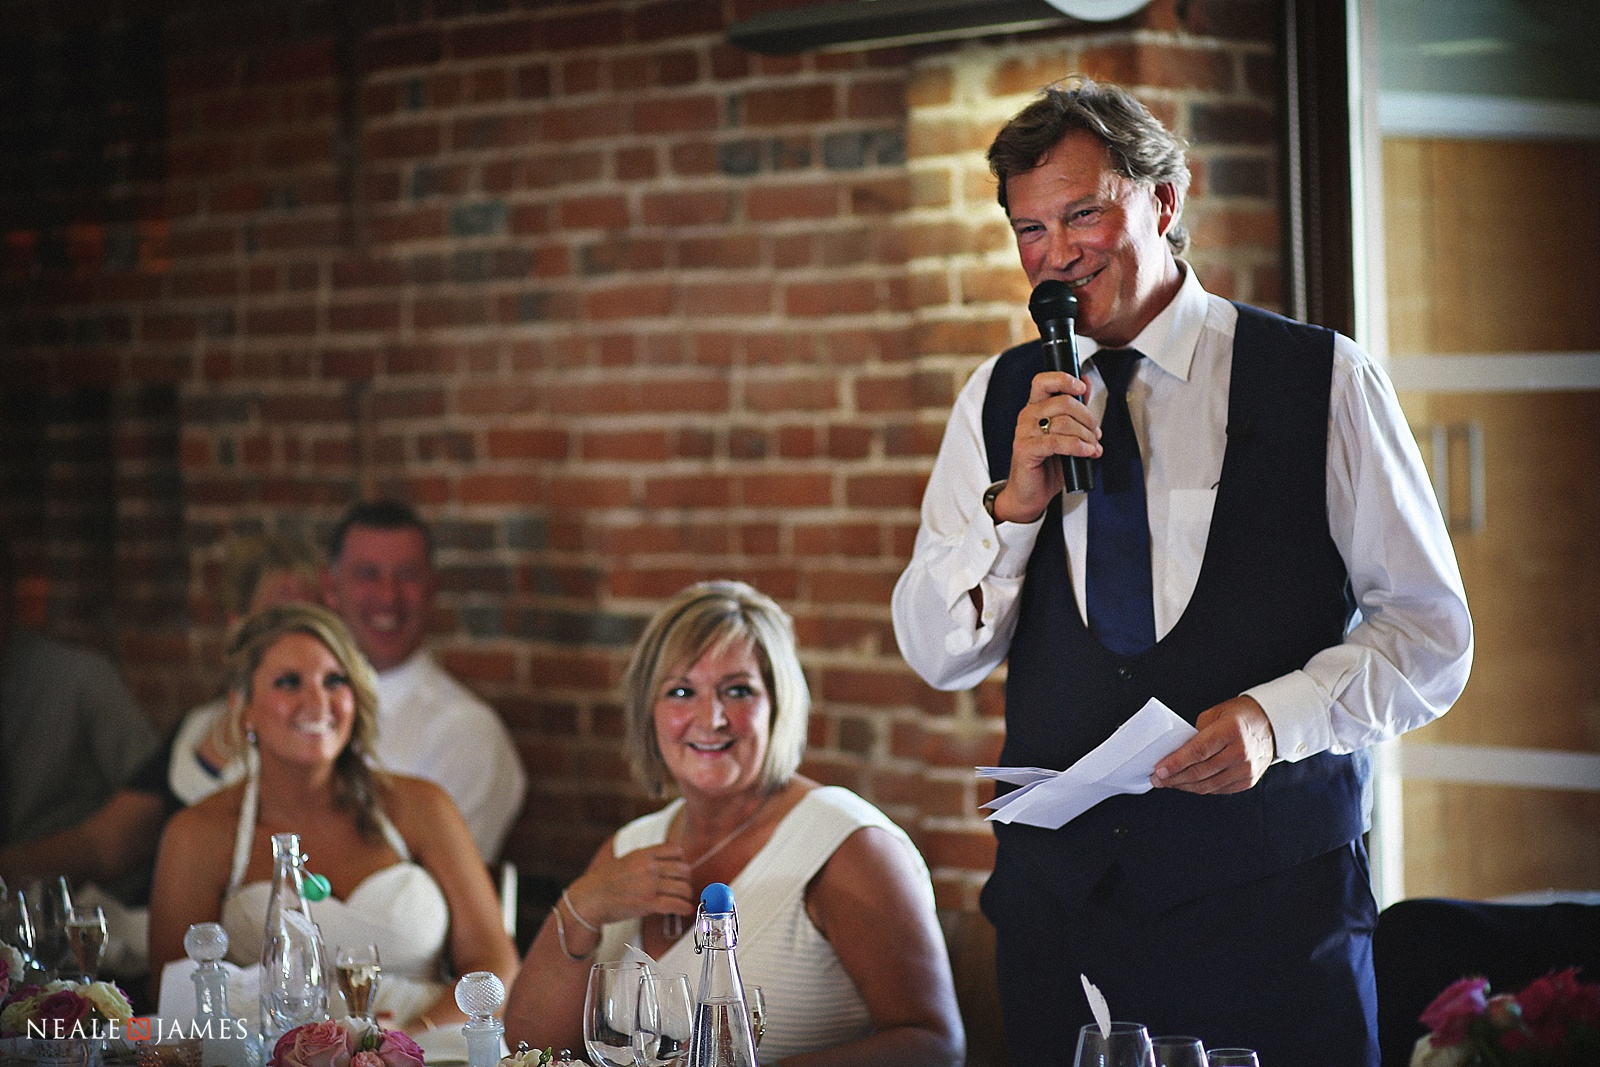 Colour picture of Glenn Hoddle making his speech at his daughter's wedding